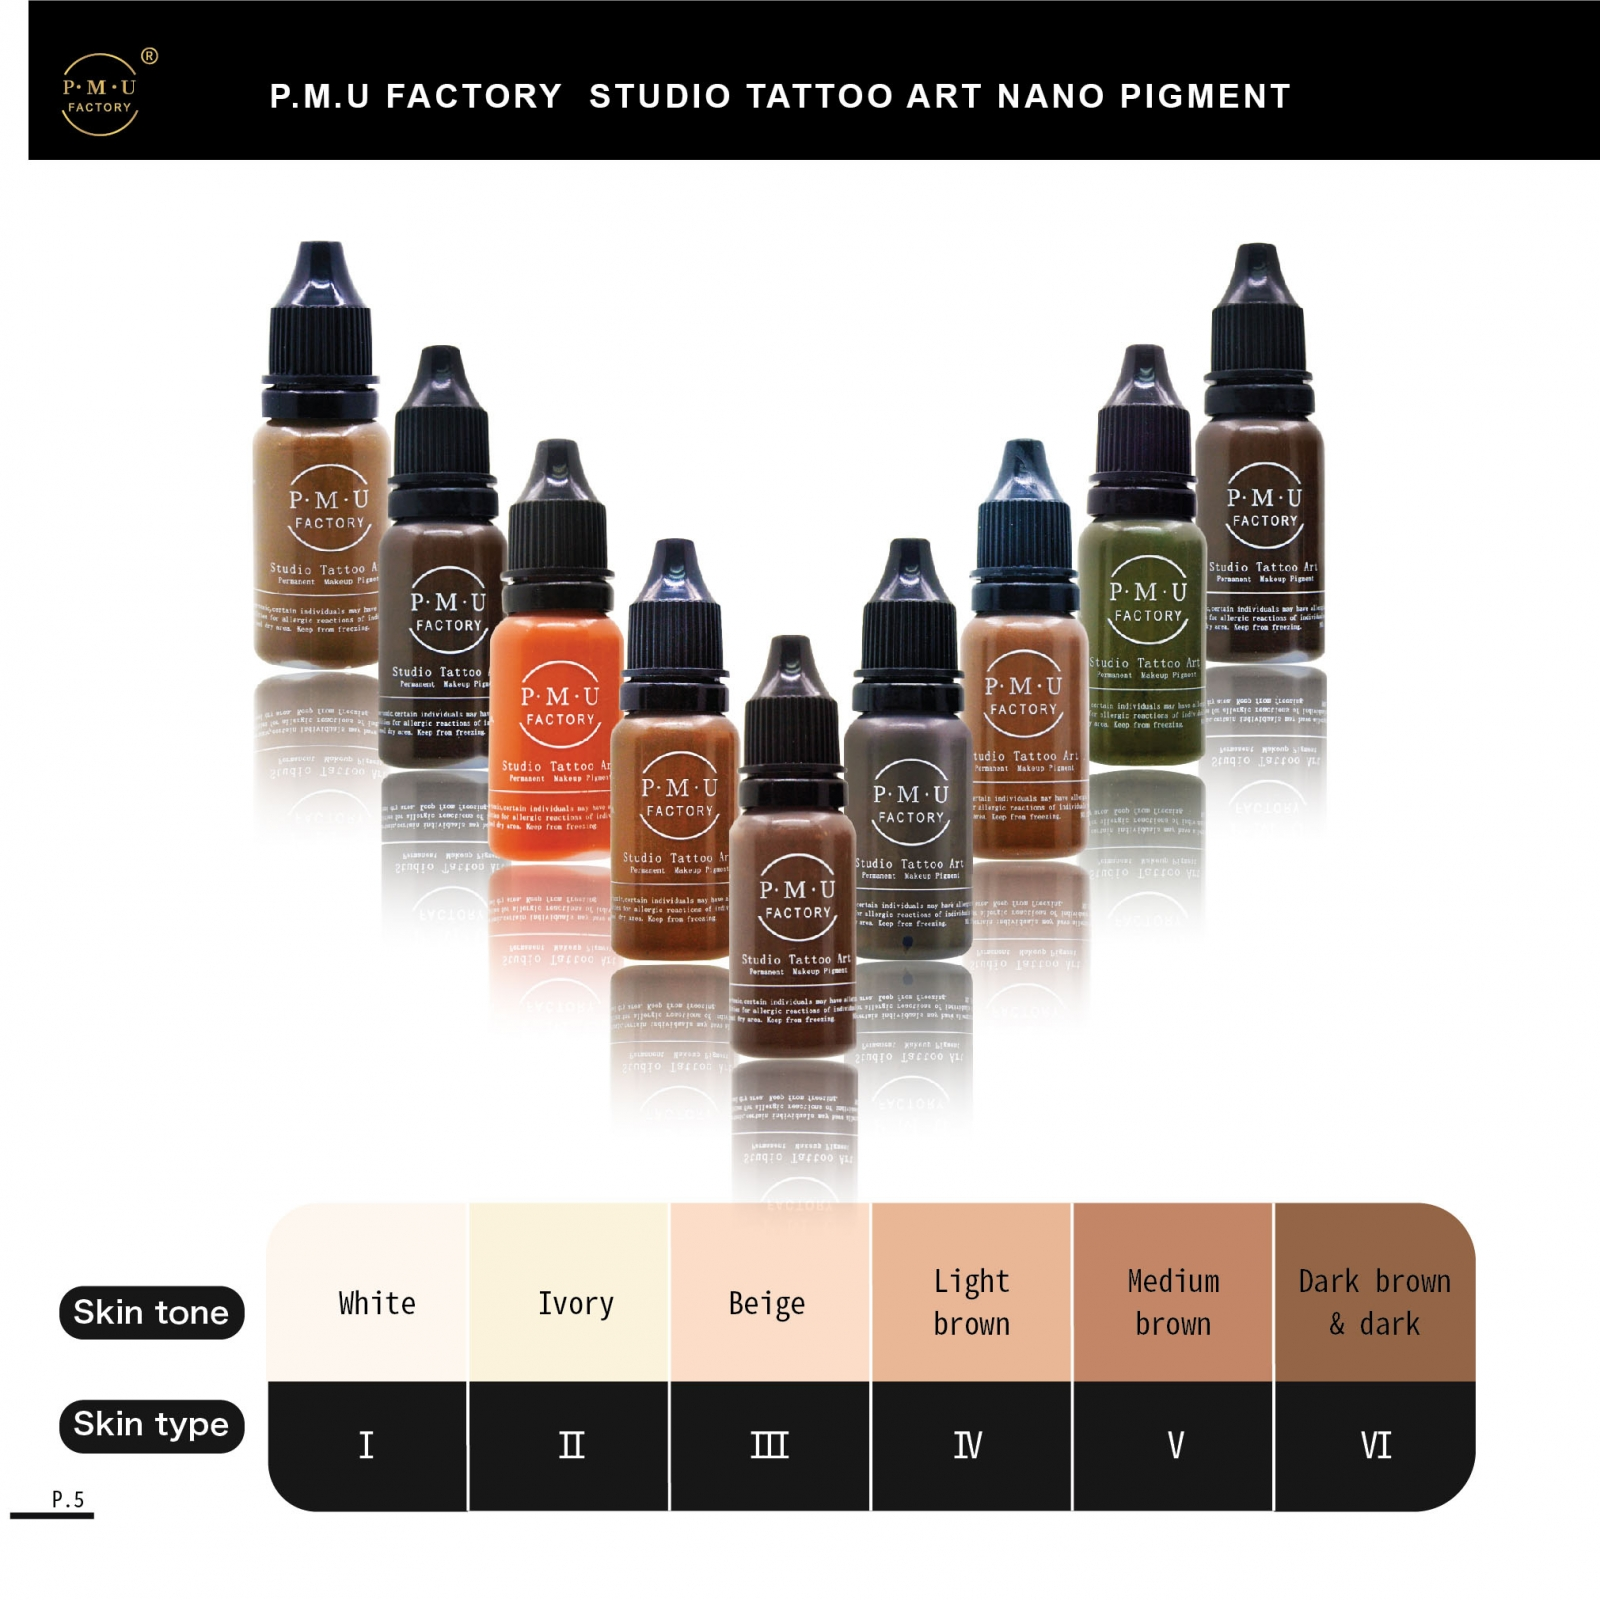 PMU FACTORY STUDIO TATTOO ART NANO PIGMENT SKIN TONE SKIN TYPE WHITE IVORY BEIGE LIGHT BROWN MEDIUM BROWN DARK BROWN DARK I II III IV V VI.jpg